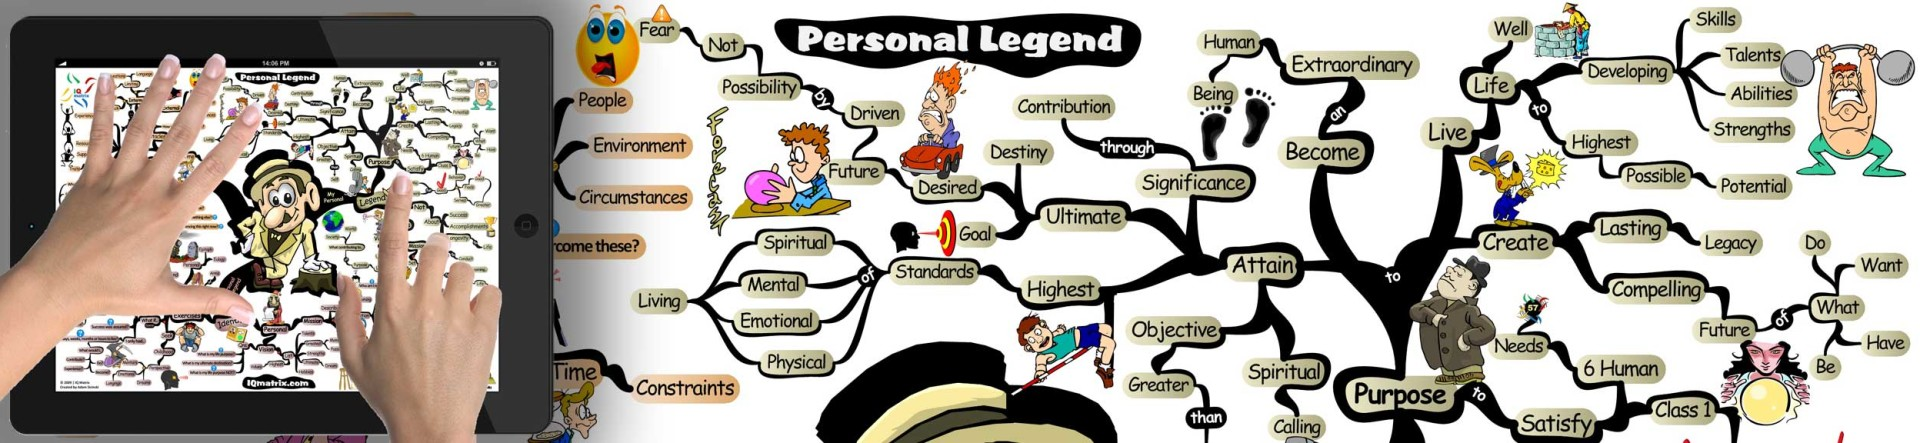 personal legend essay Personal legend: the alchemist but, unfortunately, very few follow the path laid out for them- the path to their personal legends, and to happiness.